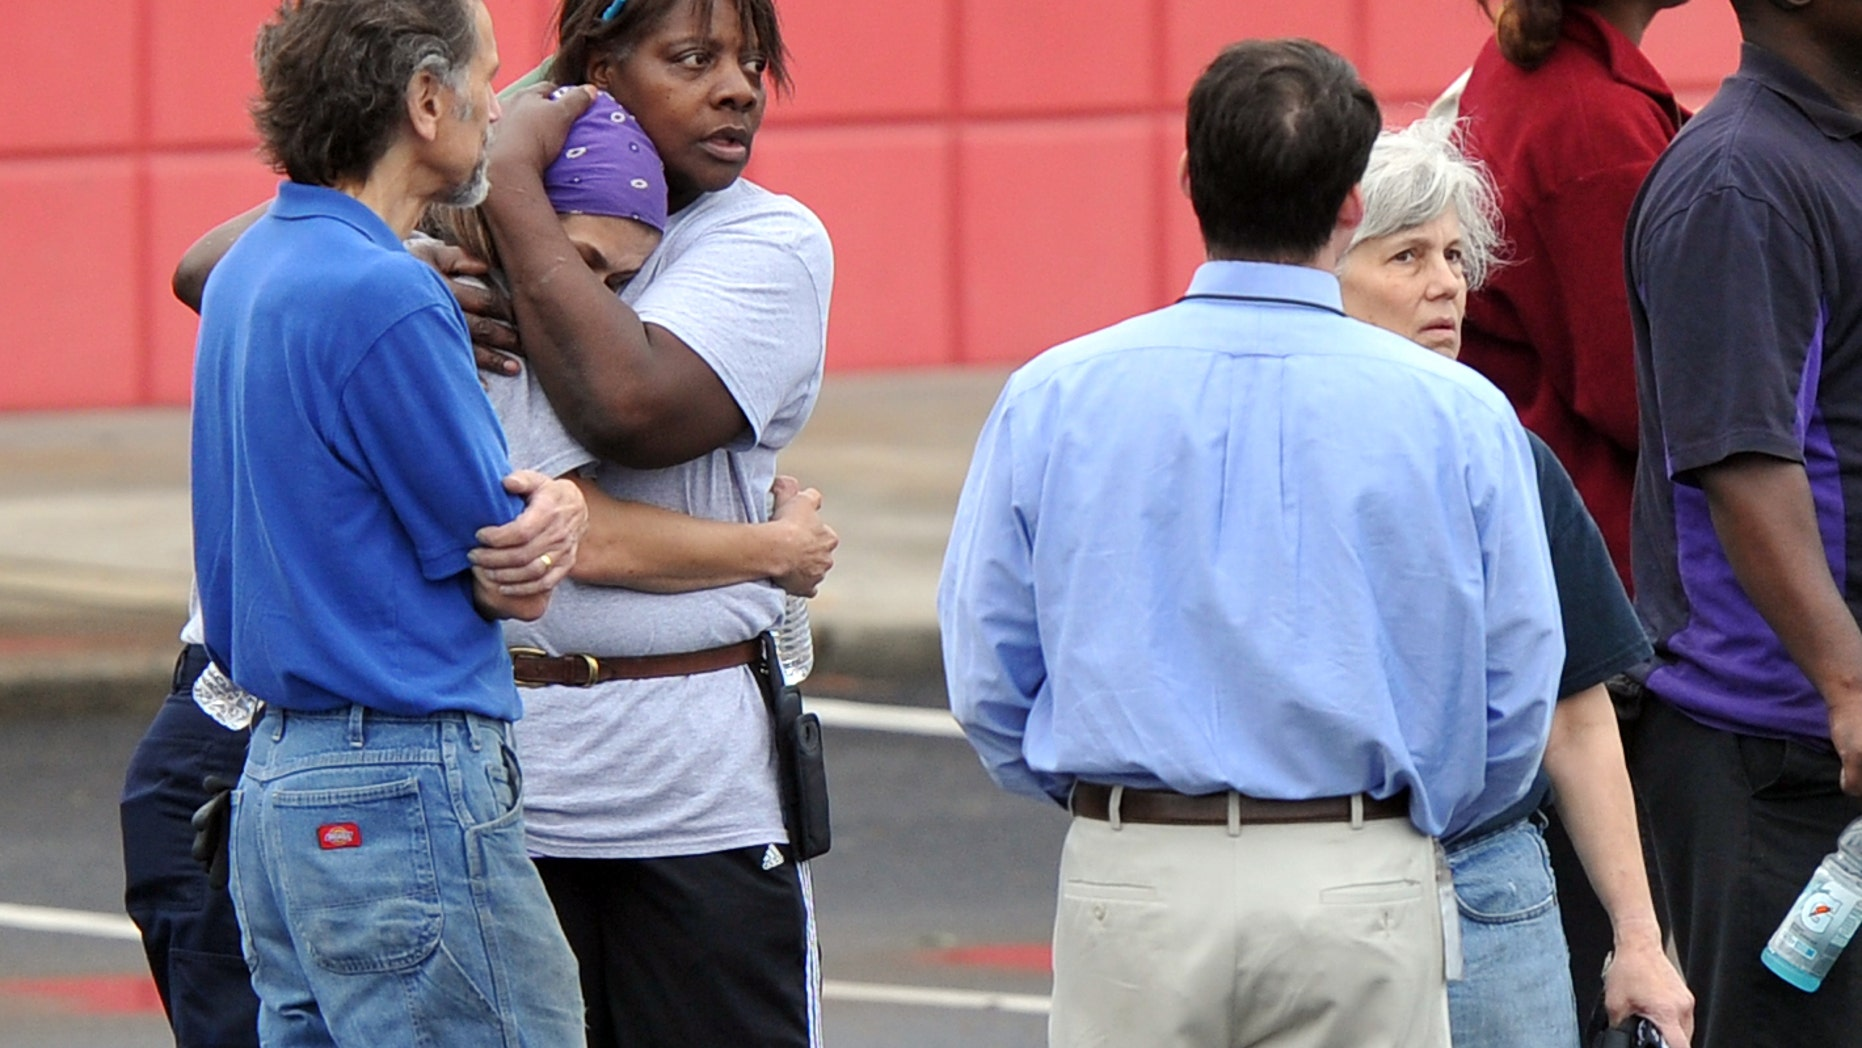 FedEx employees gather at a skating rink following a shooting at a FedEx facility in Kennesaw, Ga., on April 29, 2014.